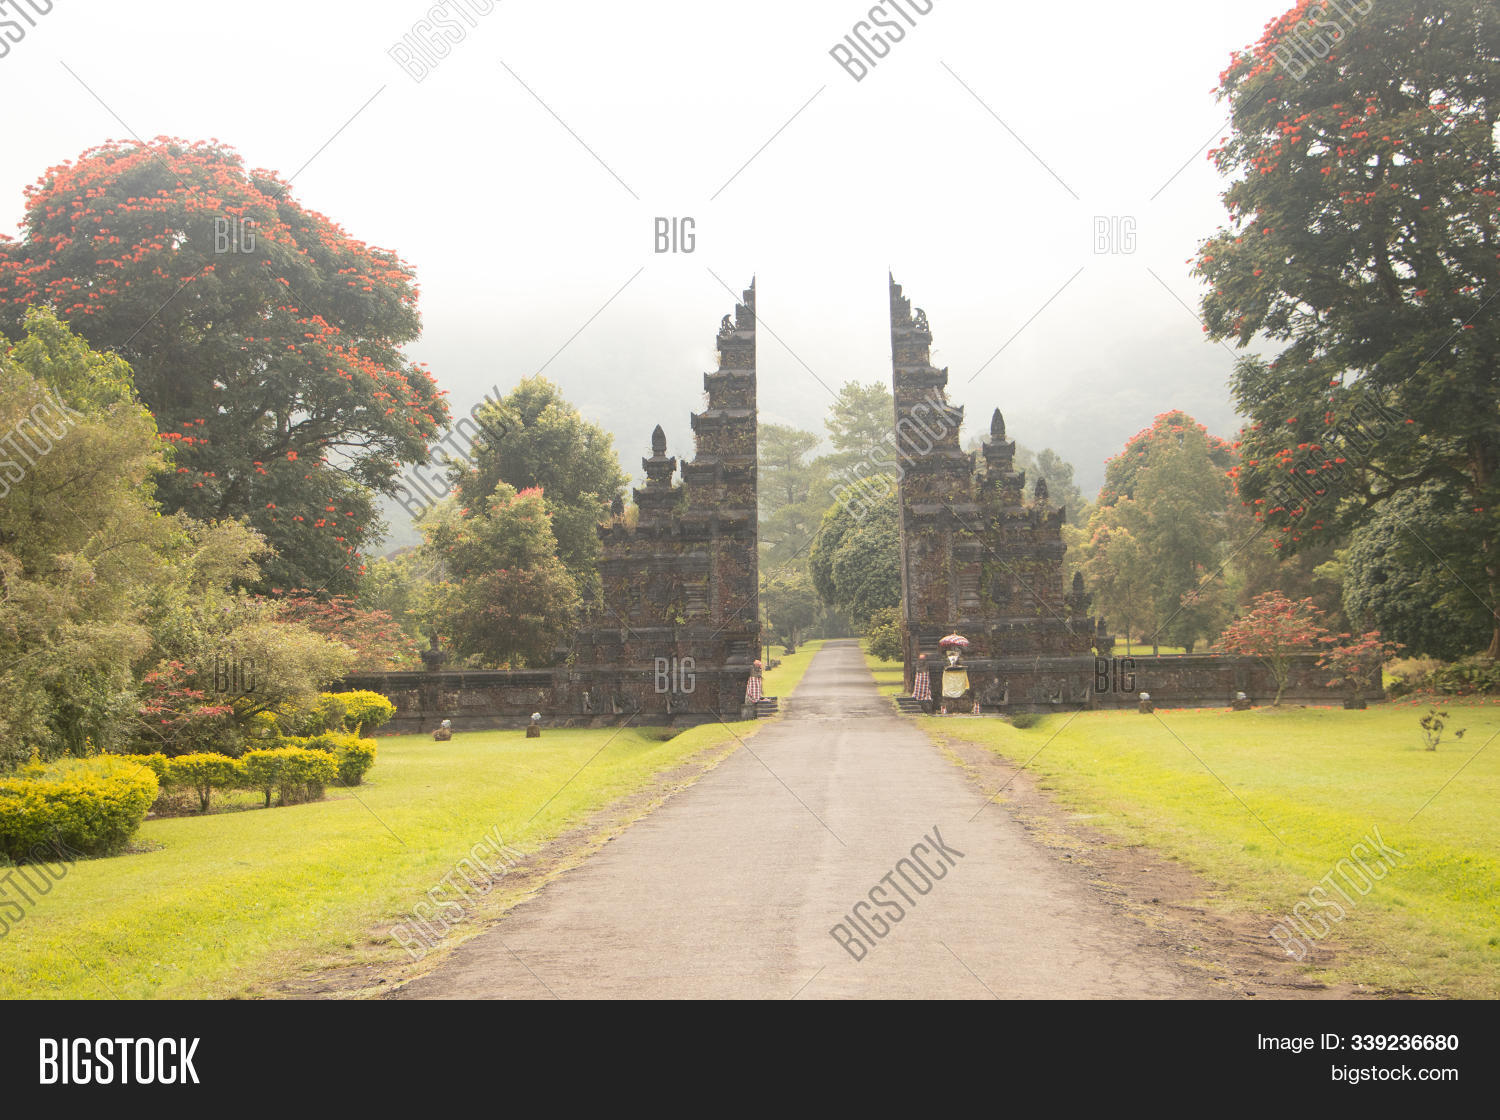 ancient,architecture,asia,attraction,background,bali,beautiful,bright,culture,destination,door,exotic,field,flora,forest,garden,gate,green,handara,holiday,impress,impressive,indonesia,landmark,landscape,mist,mountain,nature,paradise,park,relax,road,scenery,sky,stone,summer,sunlight,tourism,traditional,travel,tree,tropical,vacation,view,viewpoint